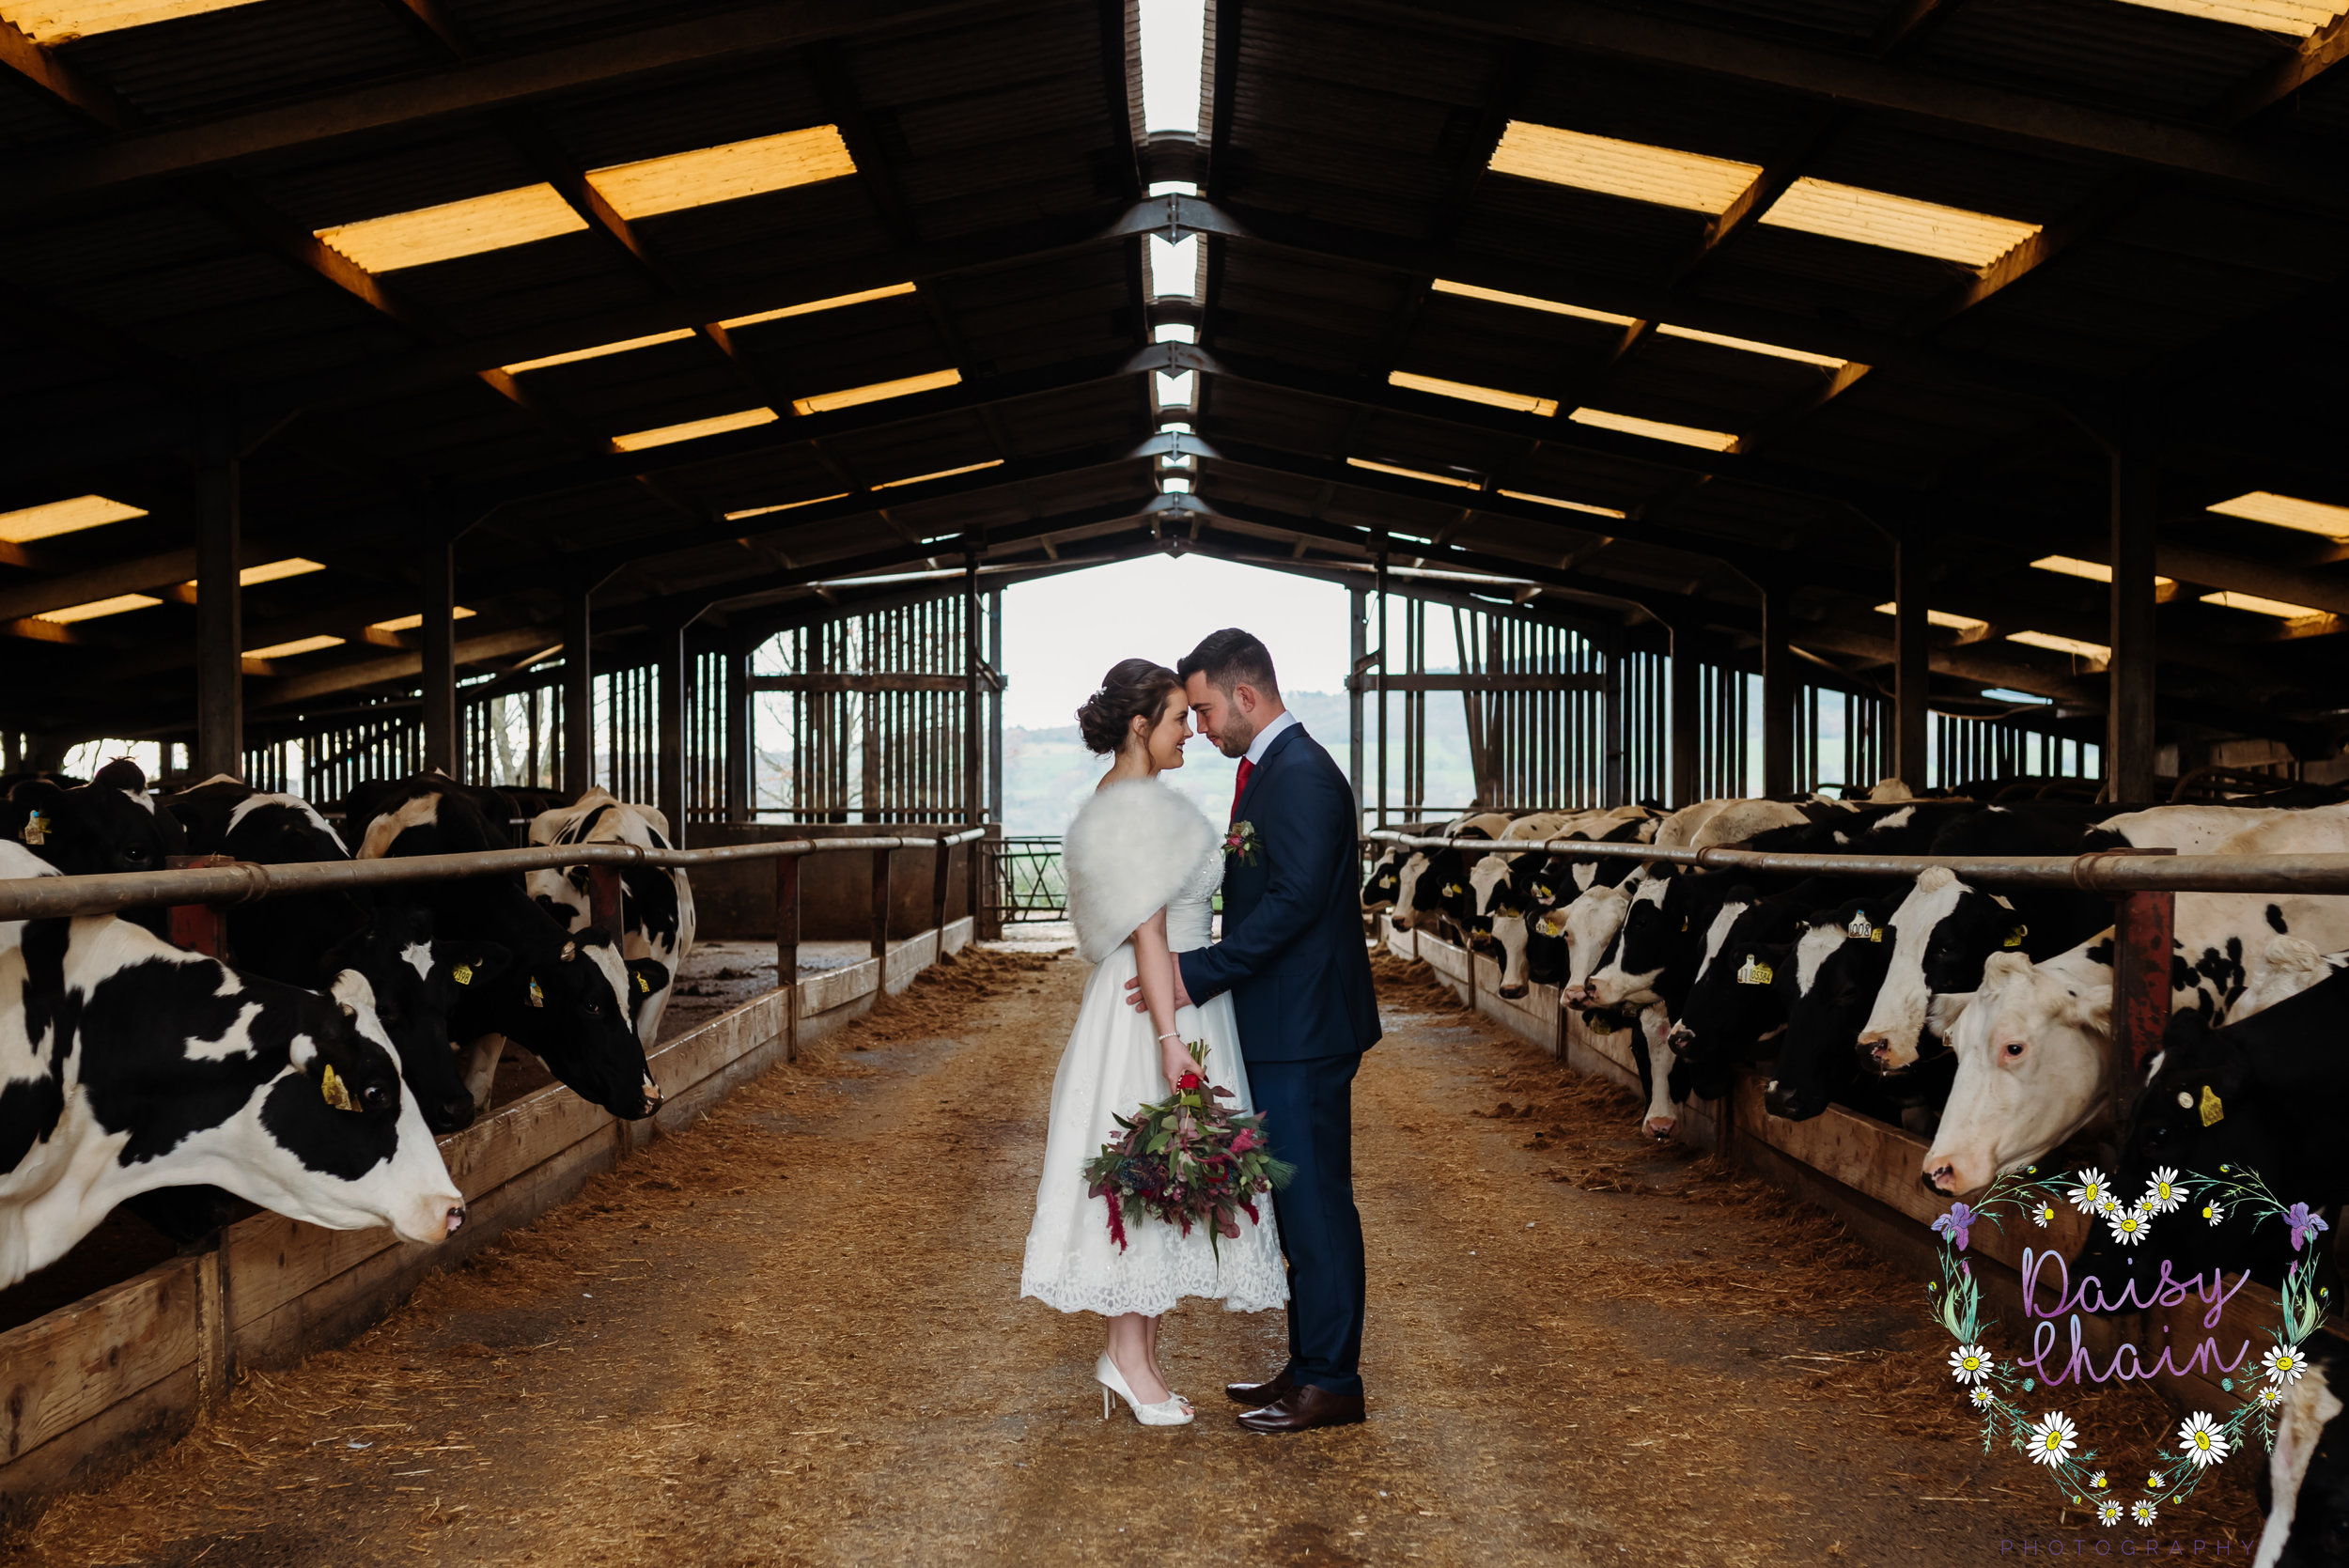 Bashall Barn, cow shed photograph